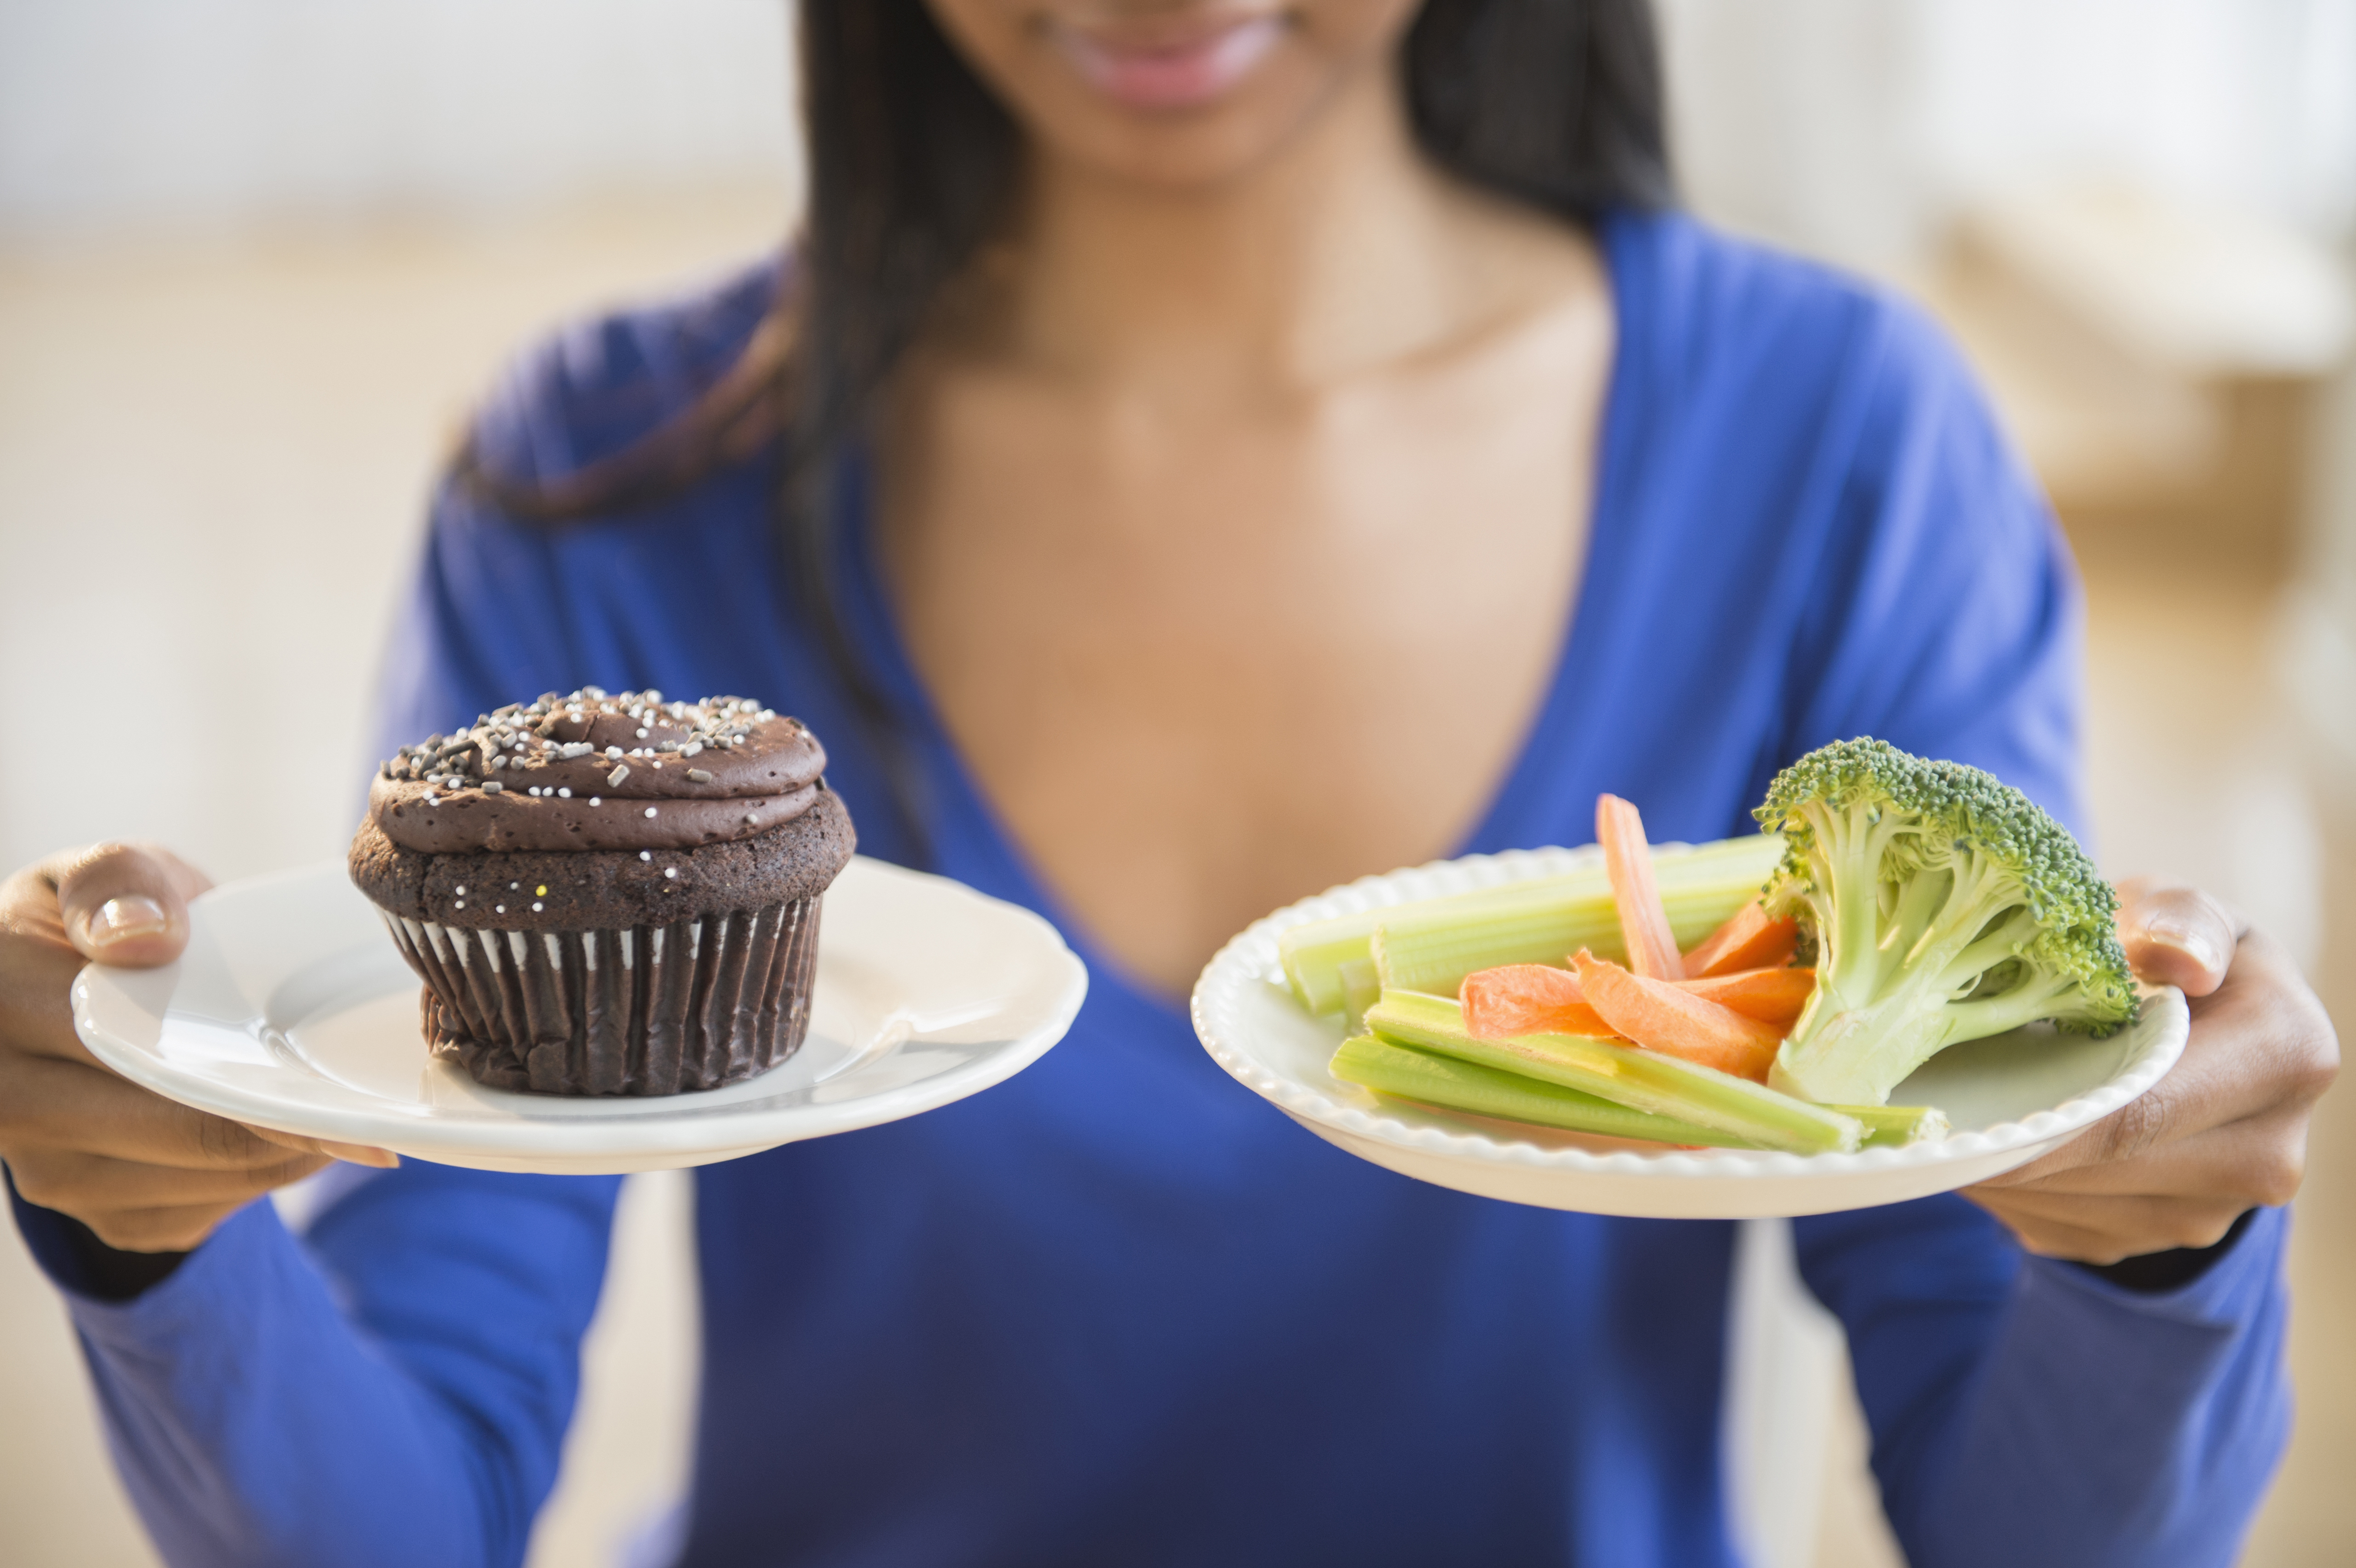 woman holding cupcake and veggies